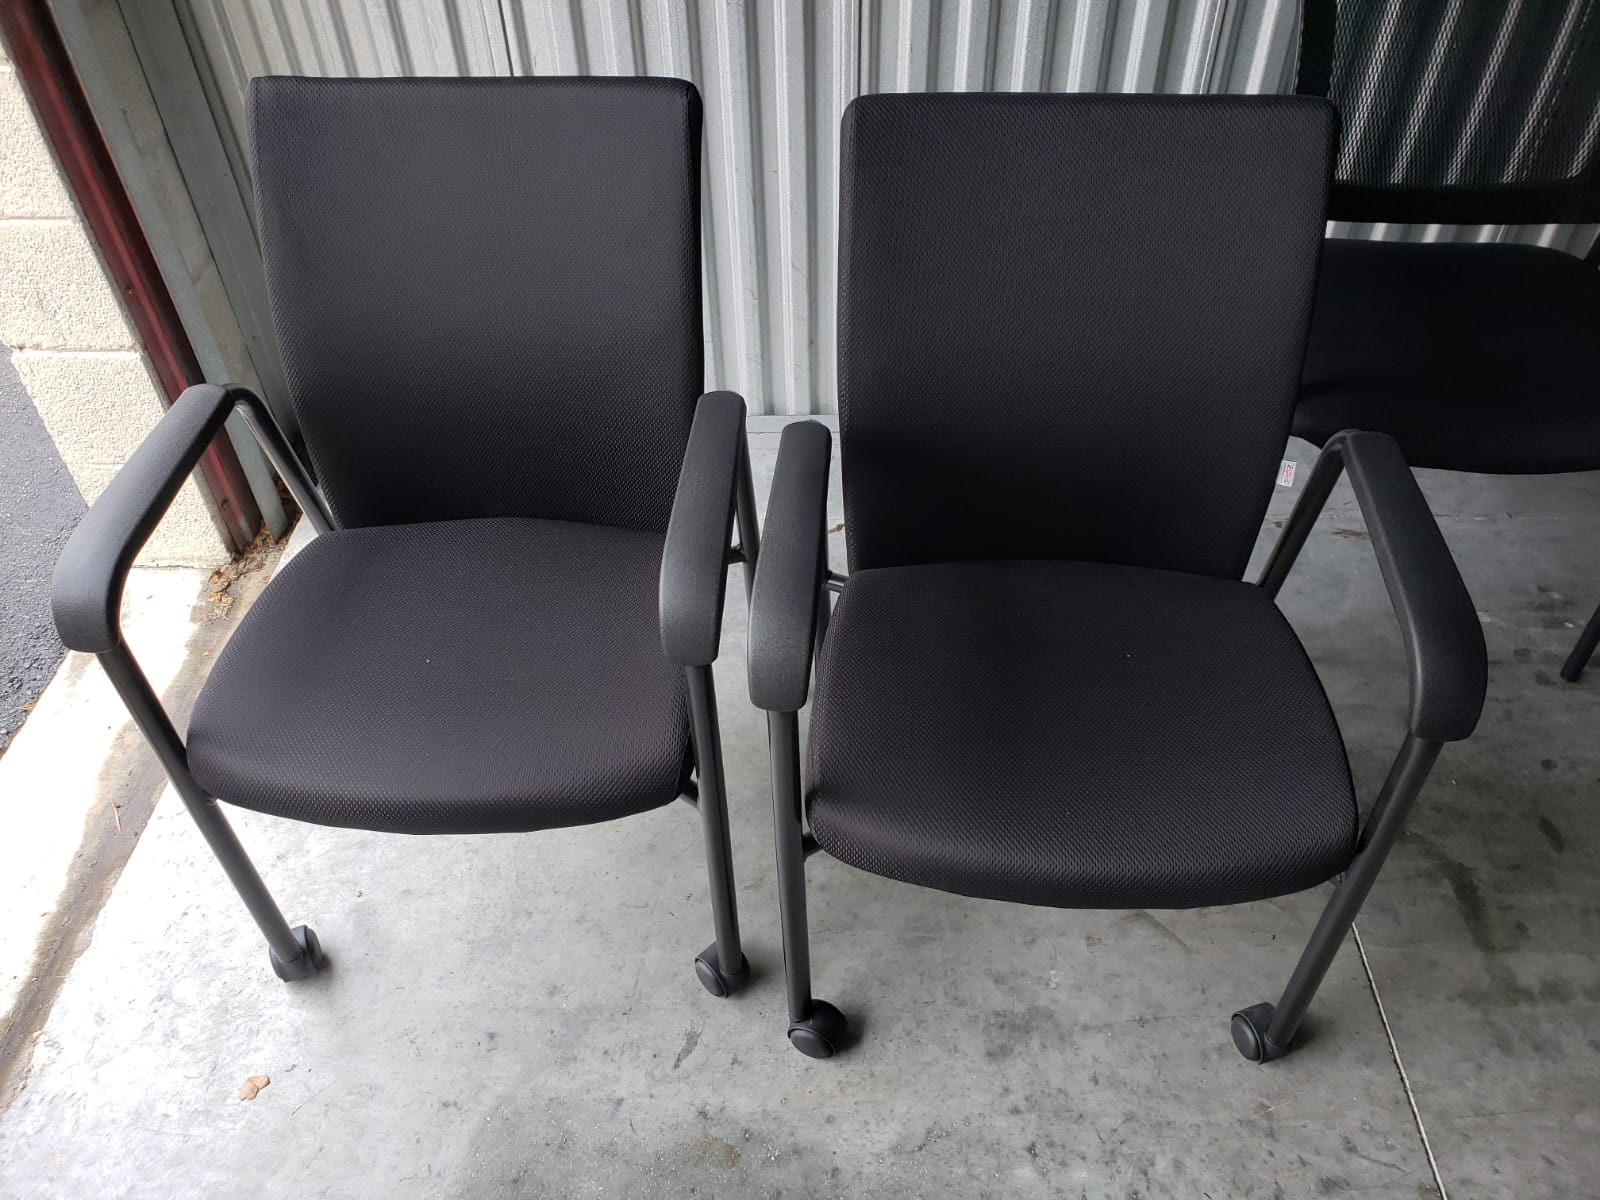 Guest Chair with wheels